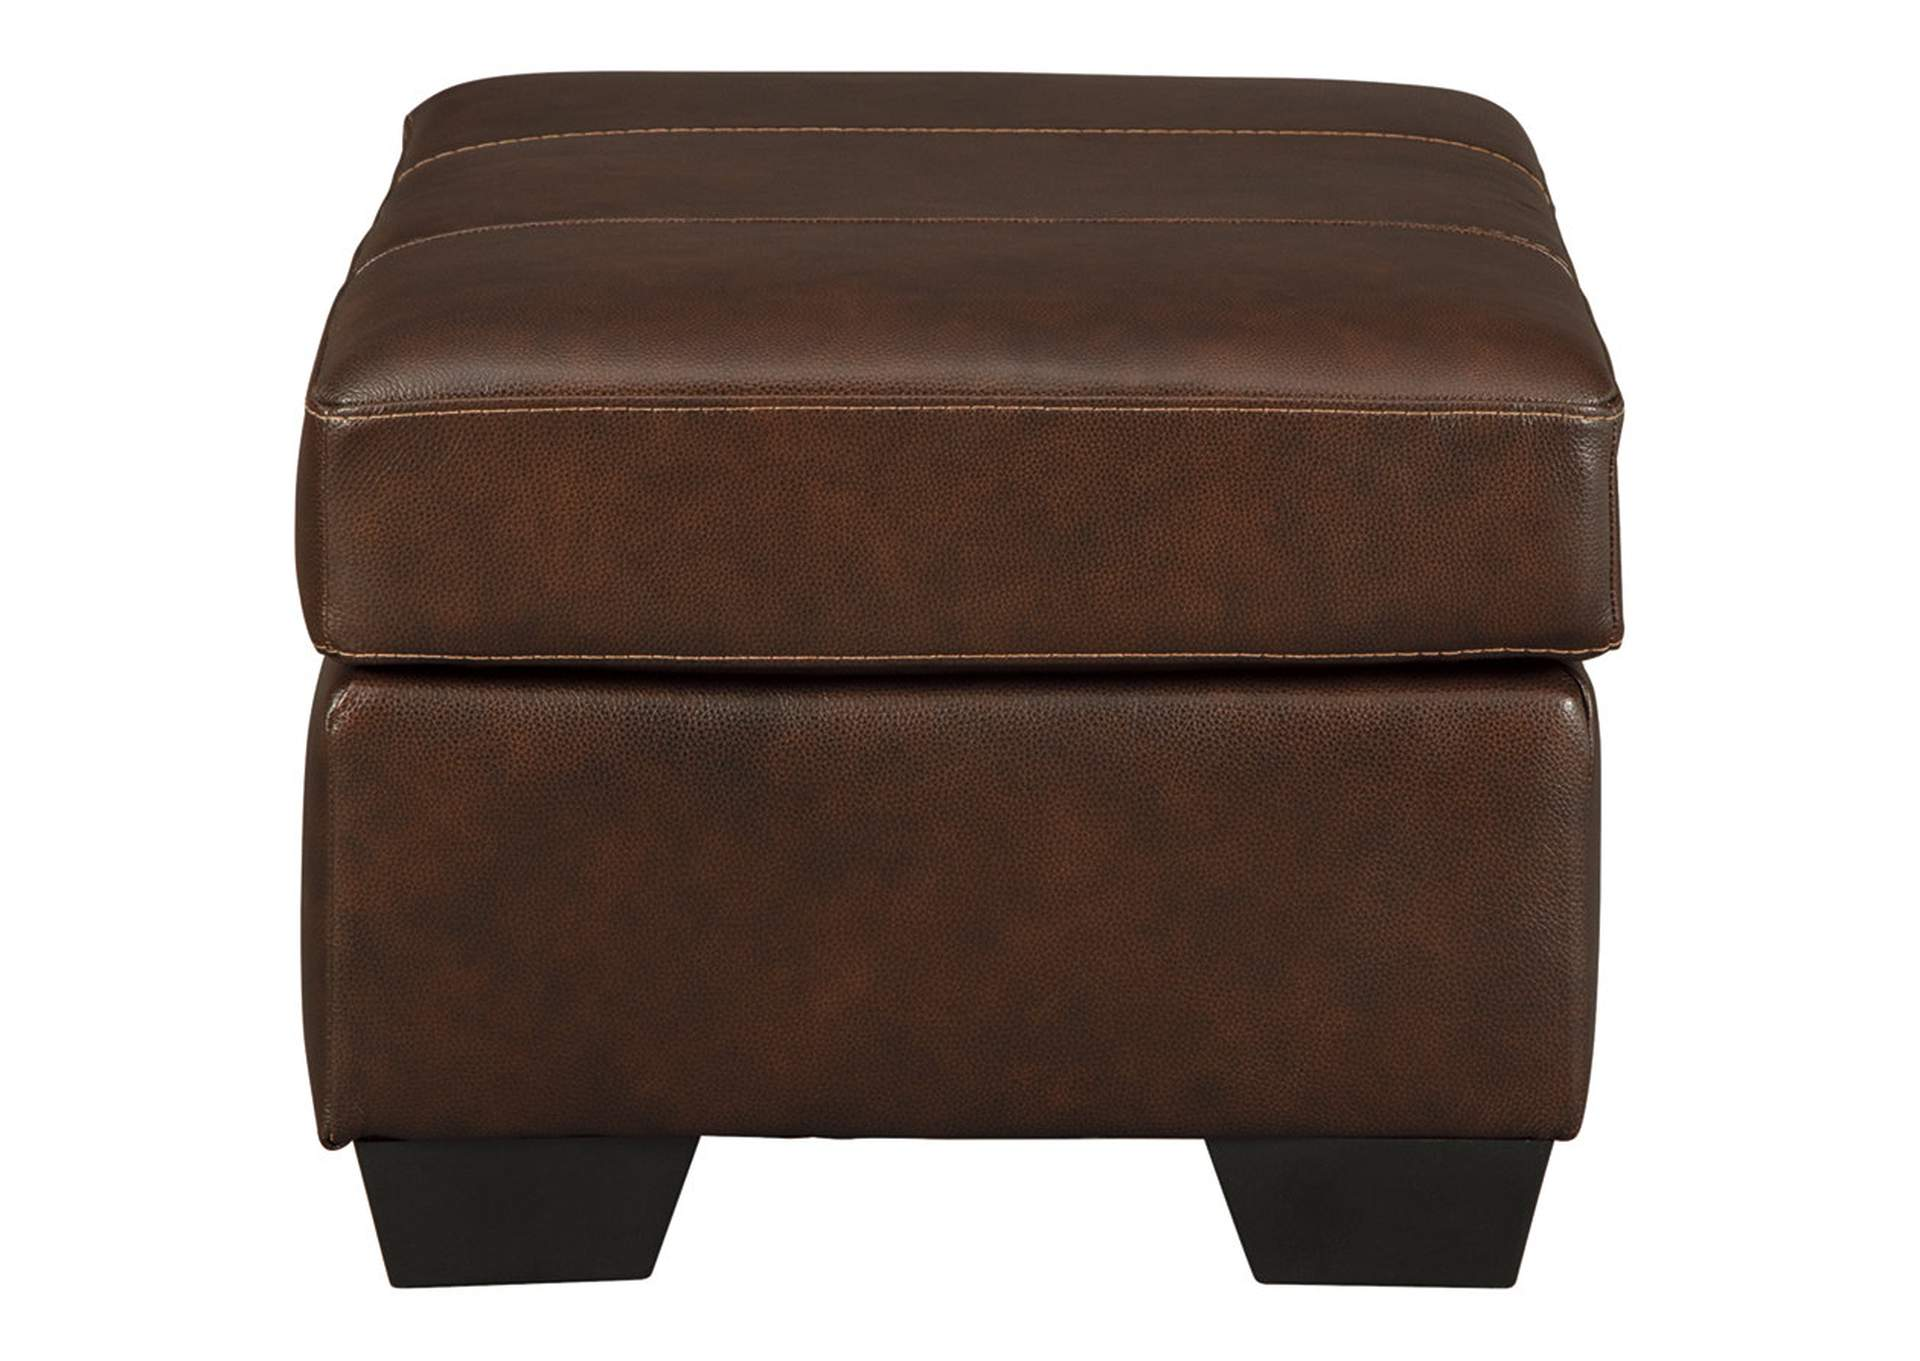 Morelos Chocolate Ottoman,Signature Design By Ashley